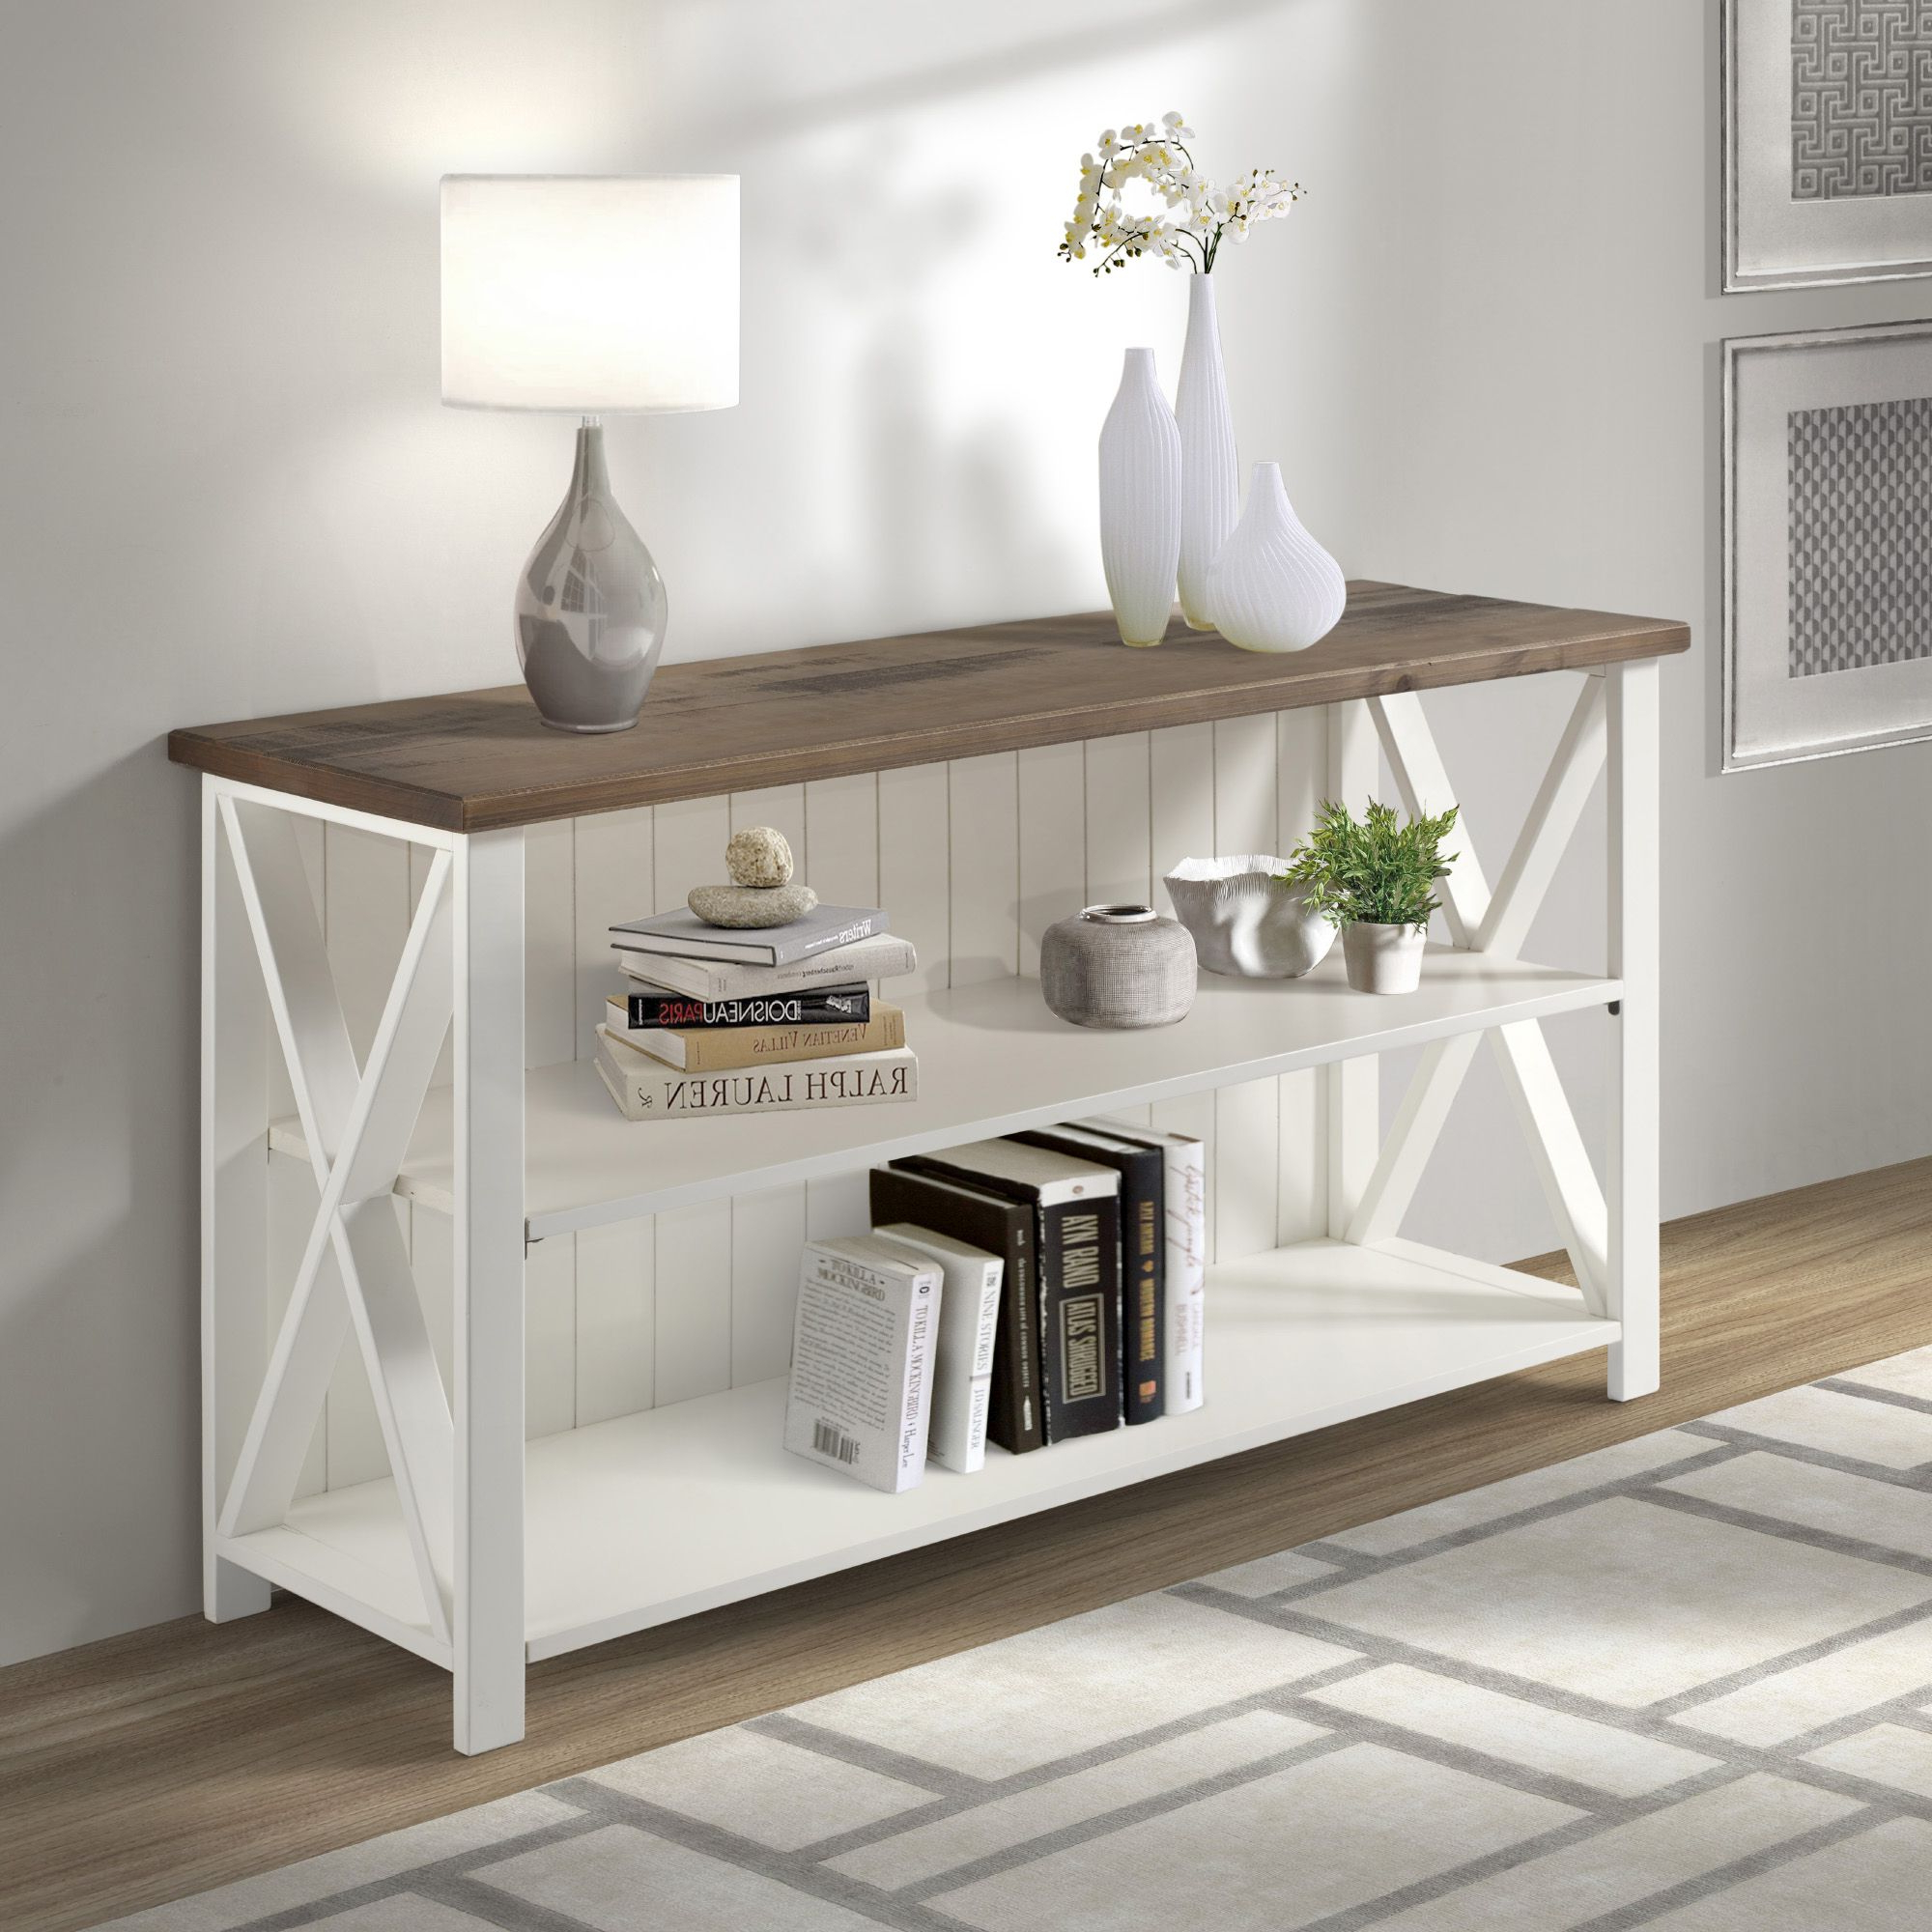 Woven Paths Solid Wood Storage Console Table, White Intended For Woven Paths Open Storage Tv Stands With Multiple Finishes (View 7 of 20)